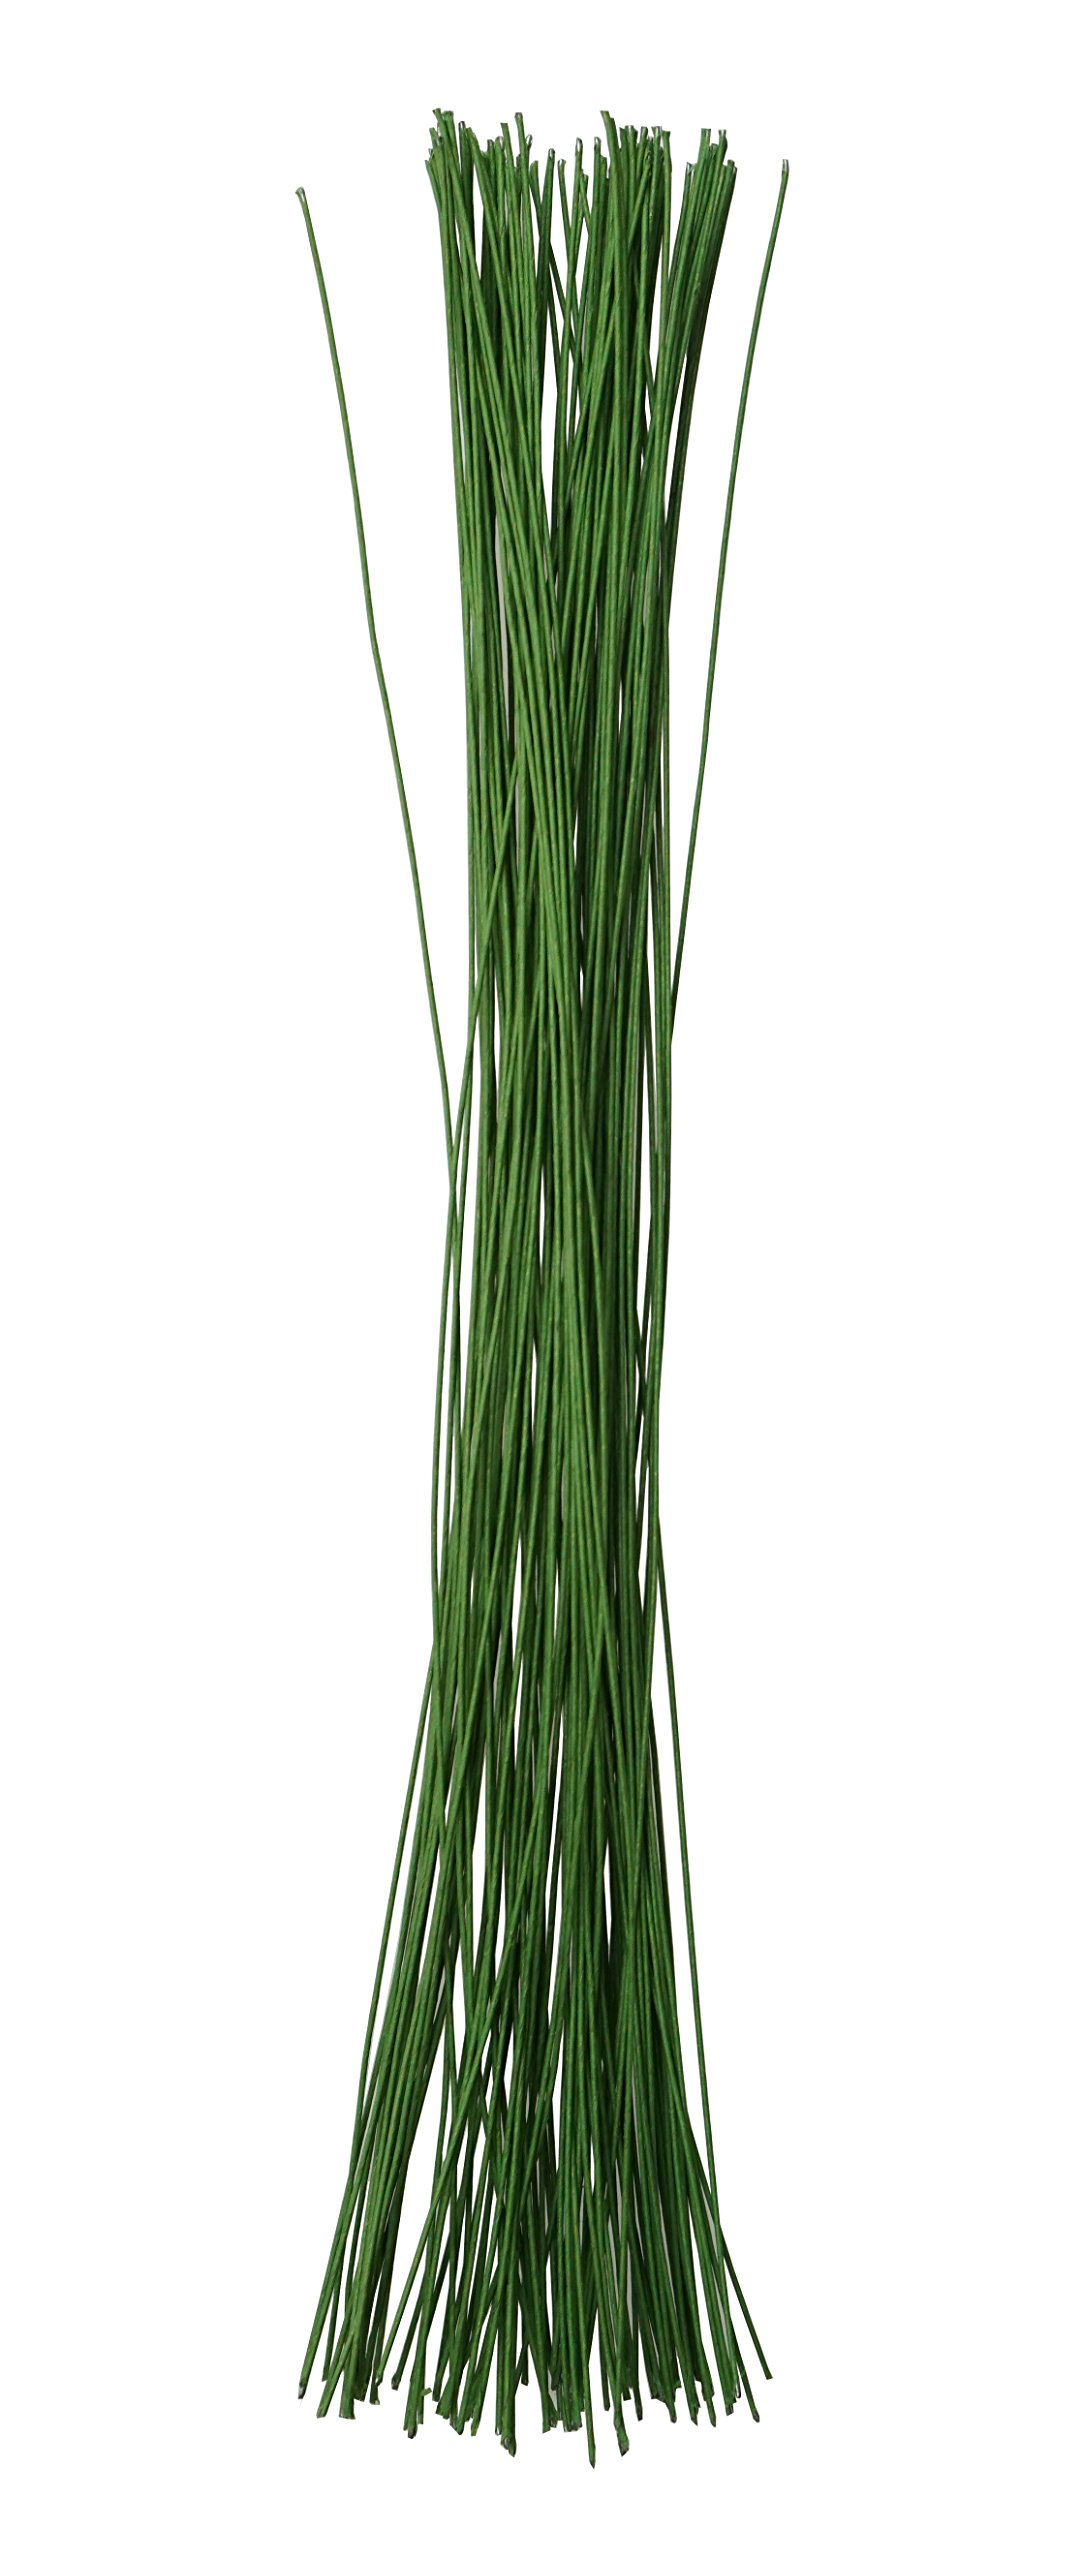 Green Crafting Floral Stem Wire 14 Inch 18 Gauge for Handcrafts 100 Counts by ZXSWEET